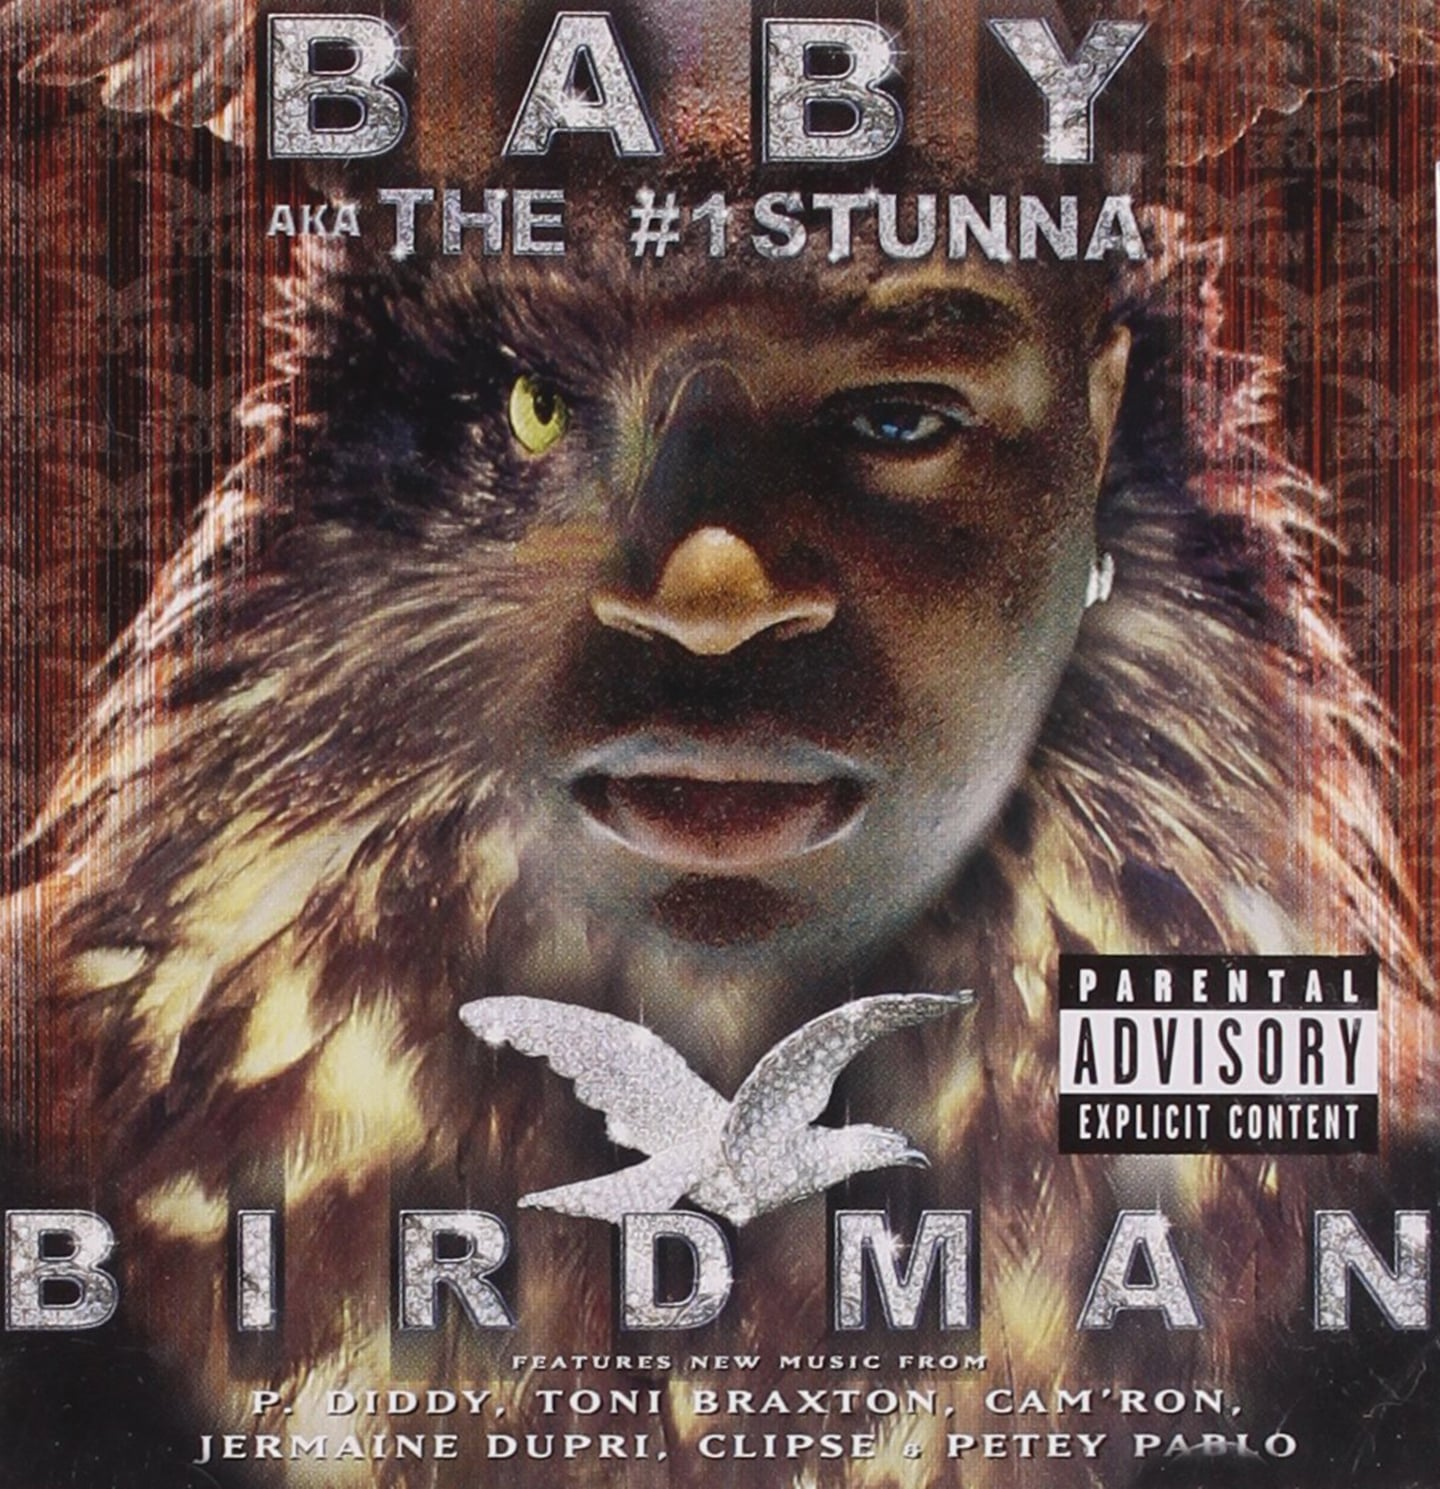 What Happened To That Boy? 25 Years Of Birdman